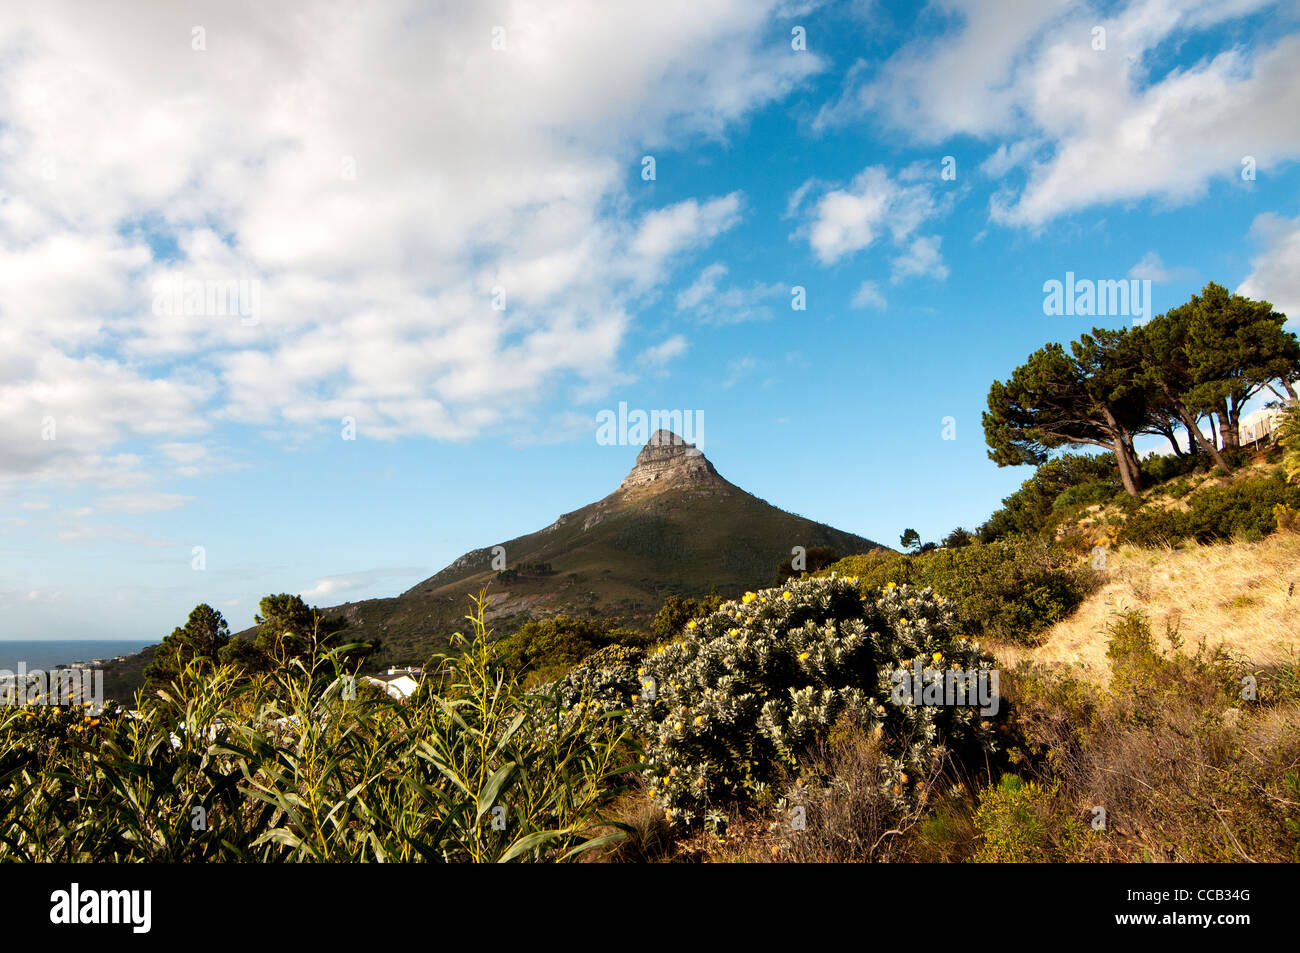 Lion's Head mountain, Cape Town, South Africa - Stock Image